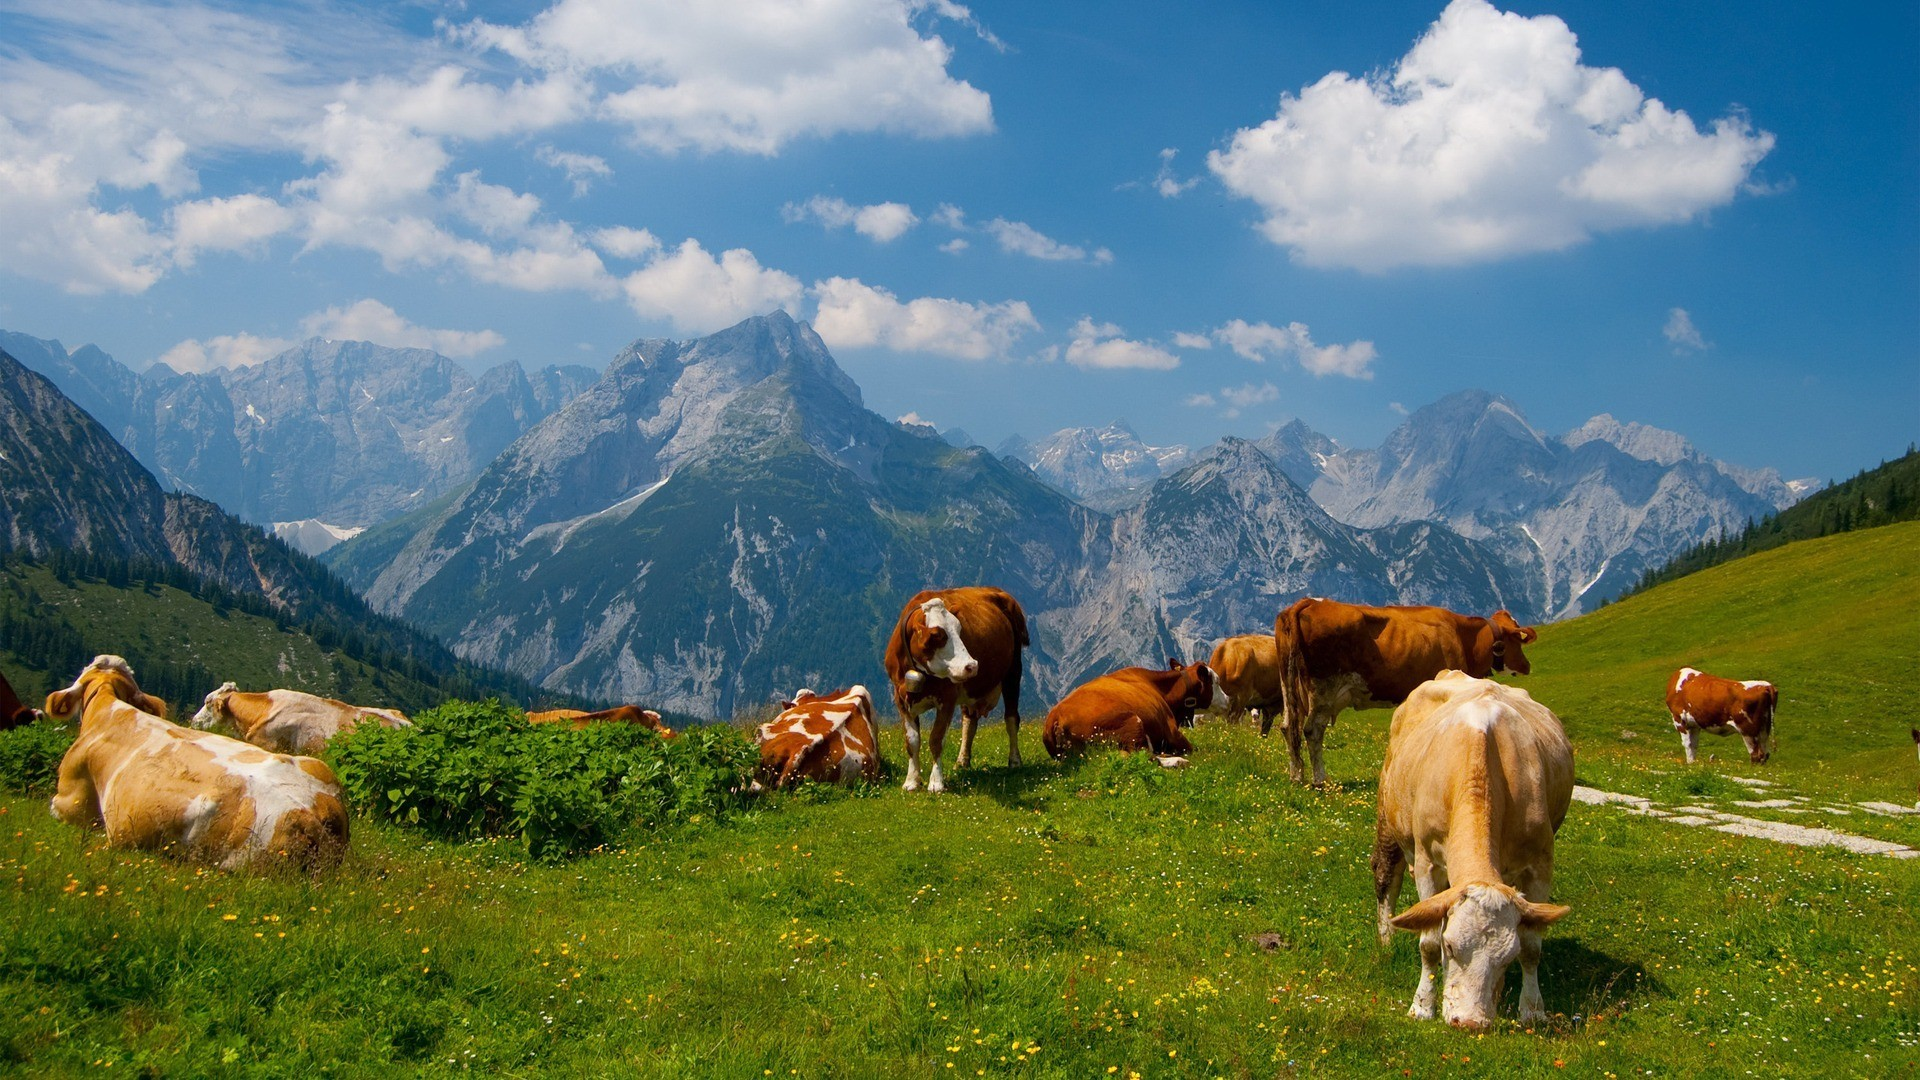 Image: Wallpaper-Cows-JCG75.jpg